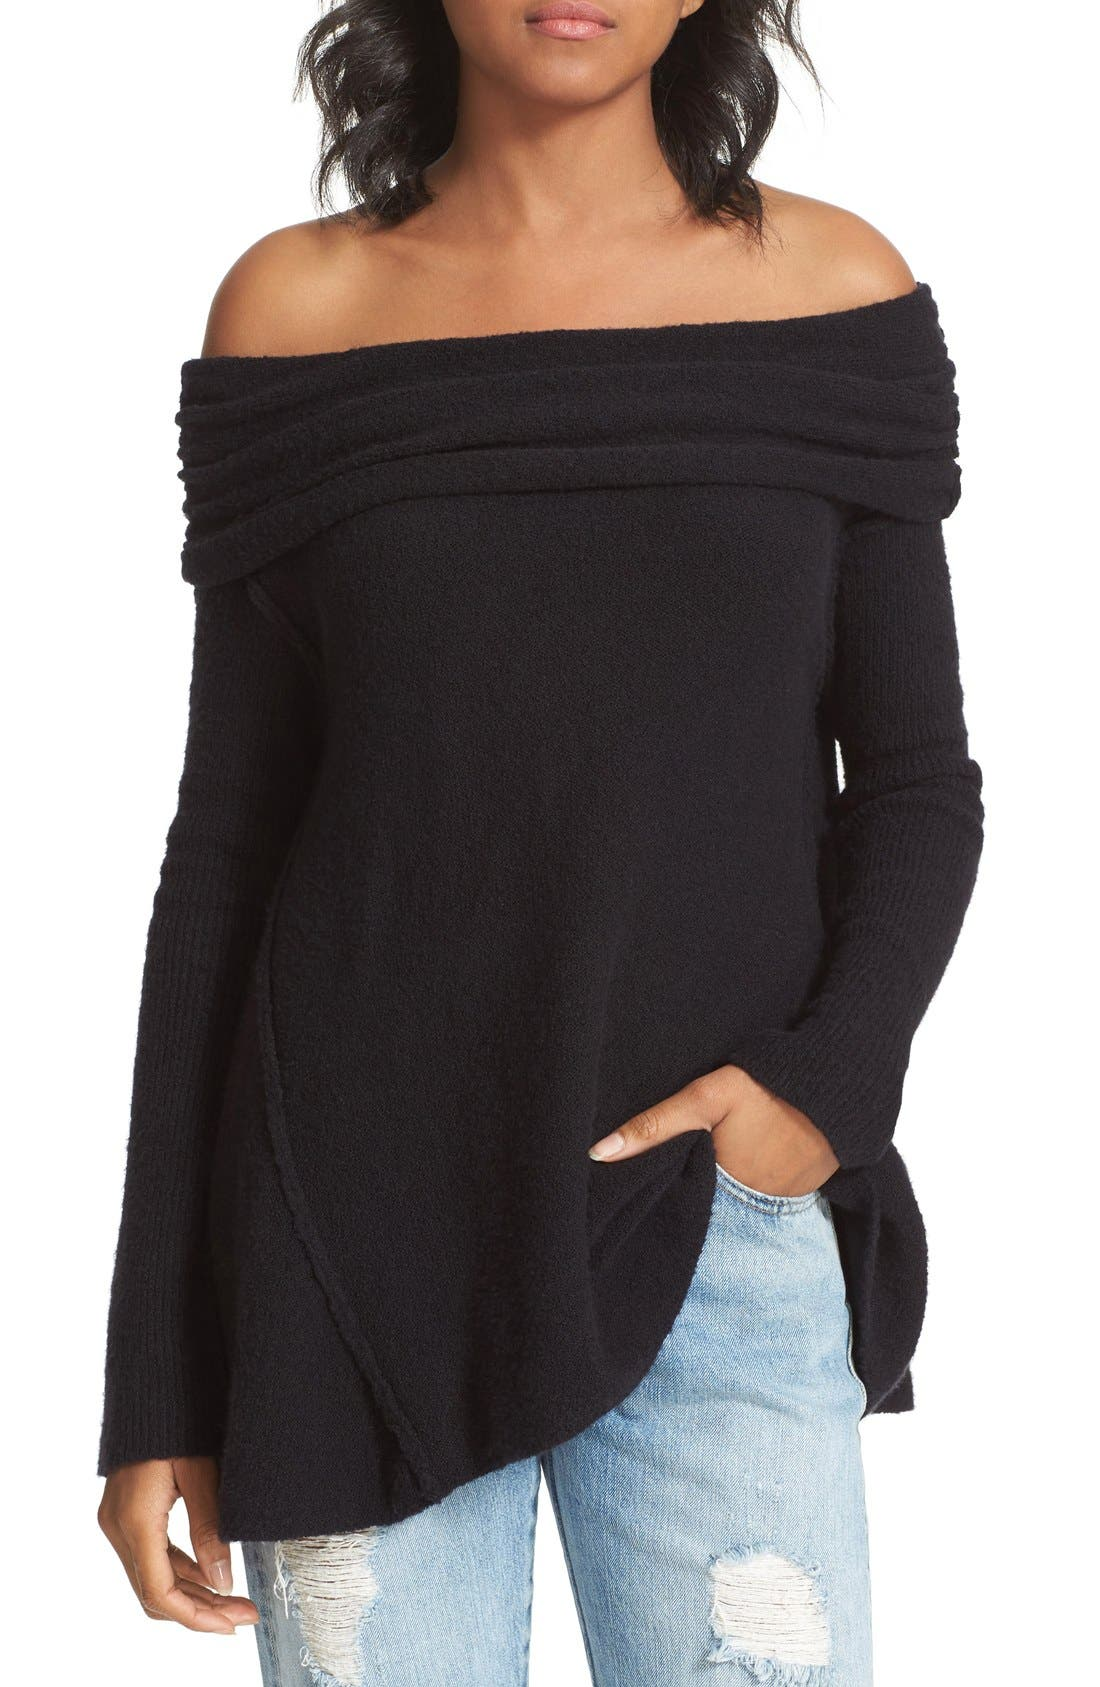 'Strawberry Fields' Off the Shoulder Sweater,                             Main thumbnail 1, color,                             Black